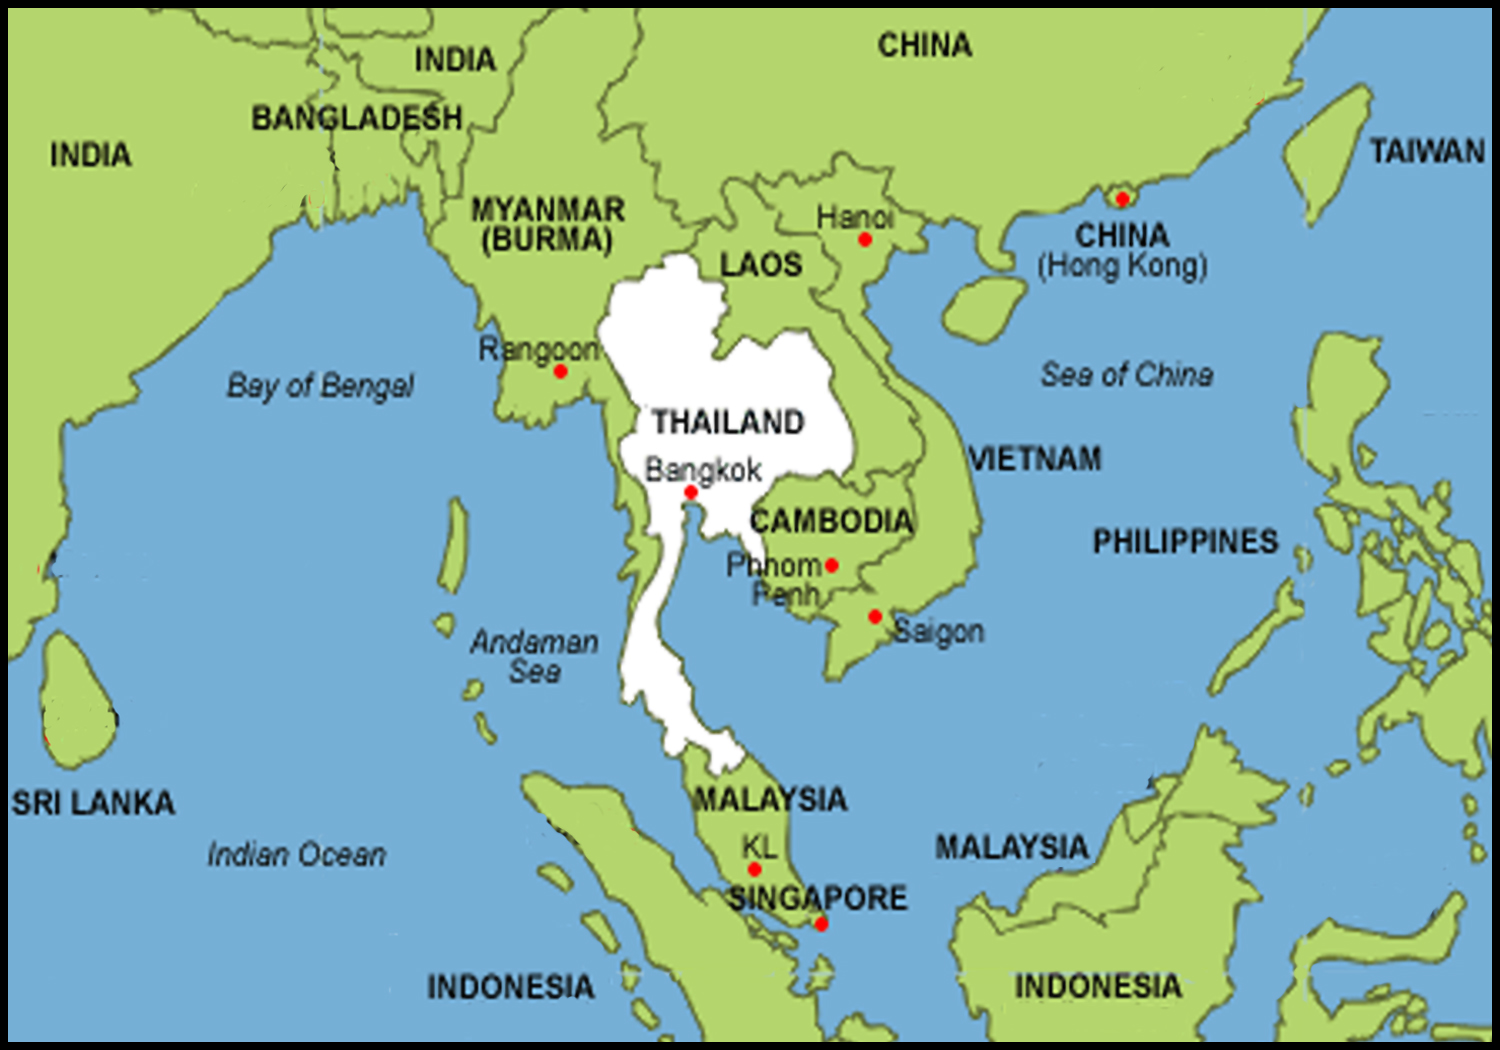 Southeast Asia STONES OF HISTORY - Where is asia